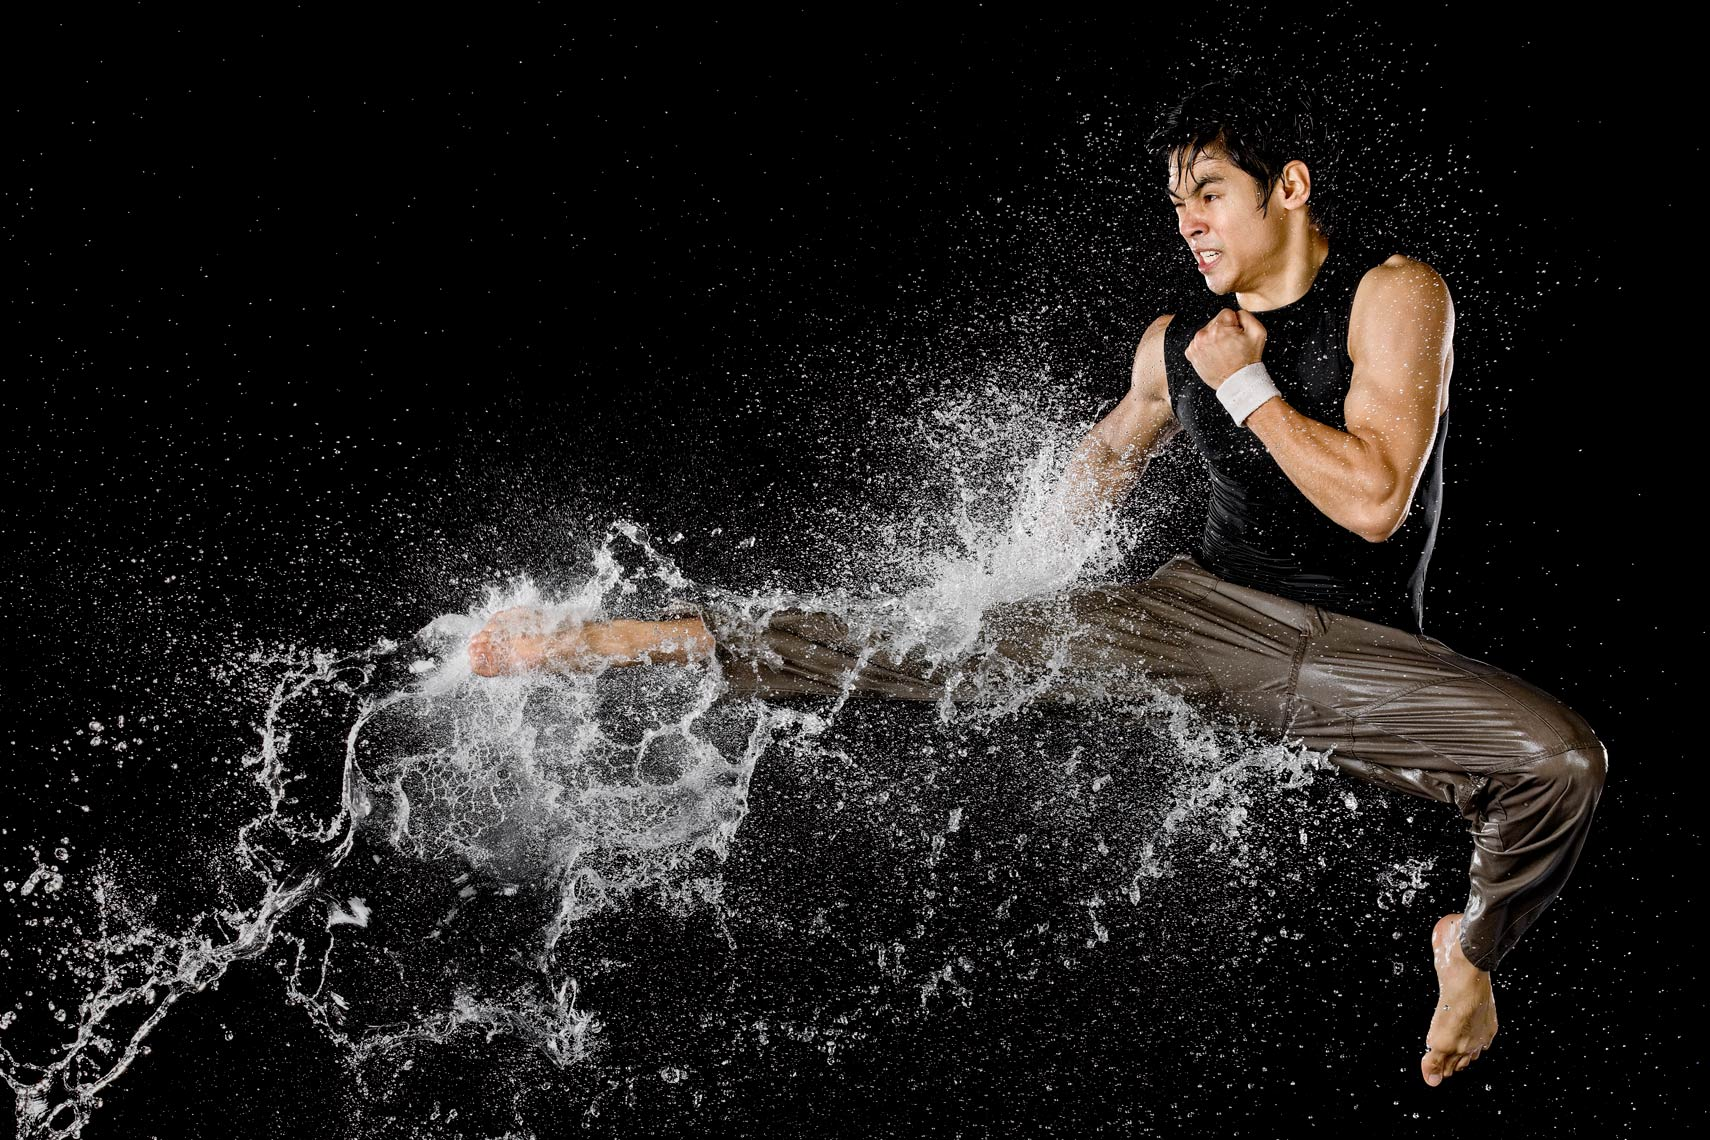 Martial-Art-Splash-0246-Edited.jpg